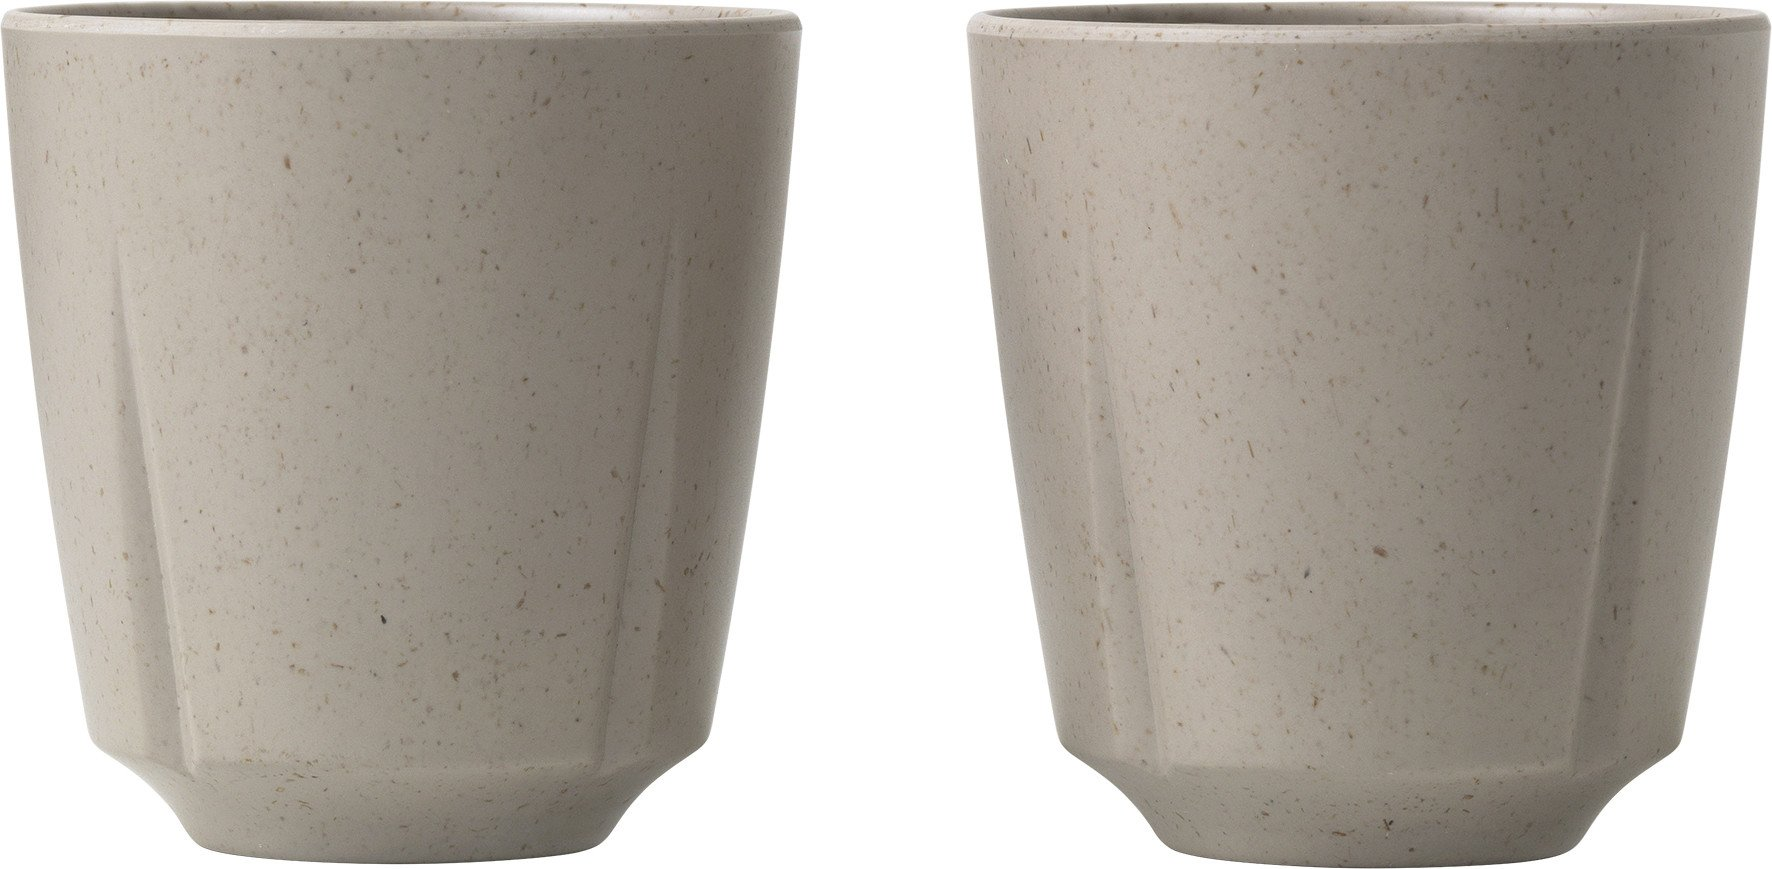 Grand Cru Take Mug 2 pcs. Sand, Rosendahl